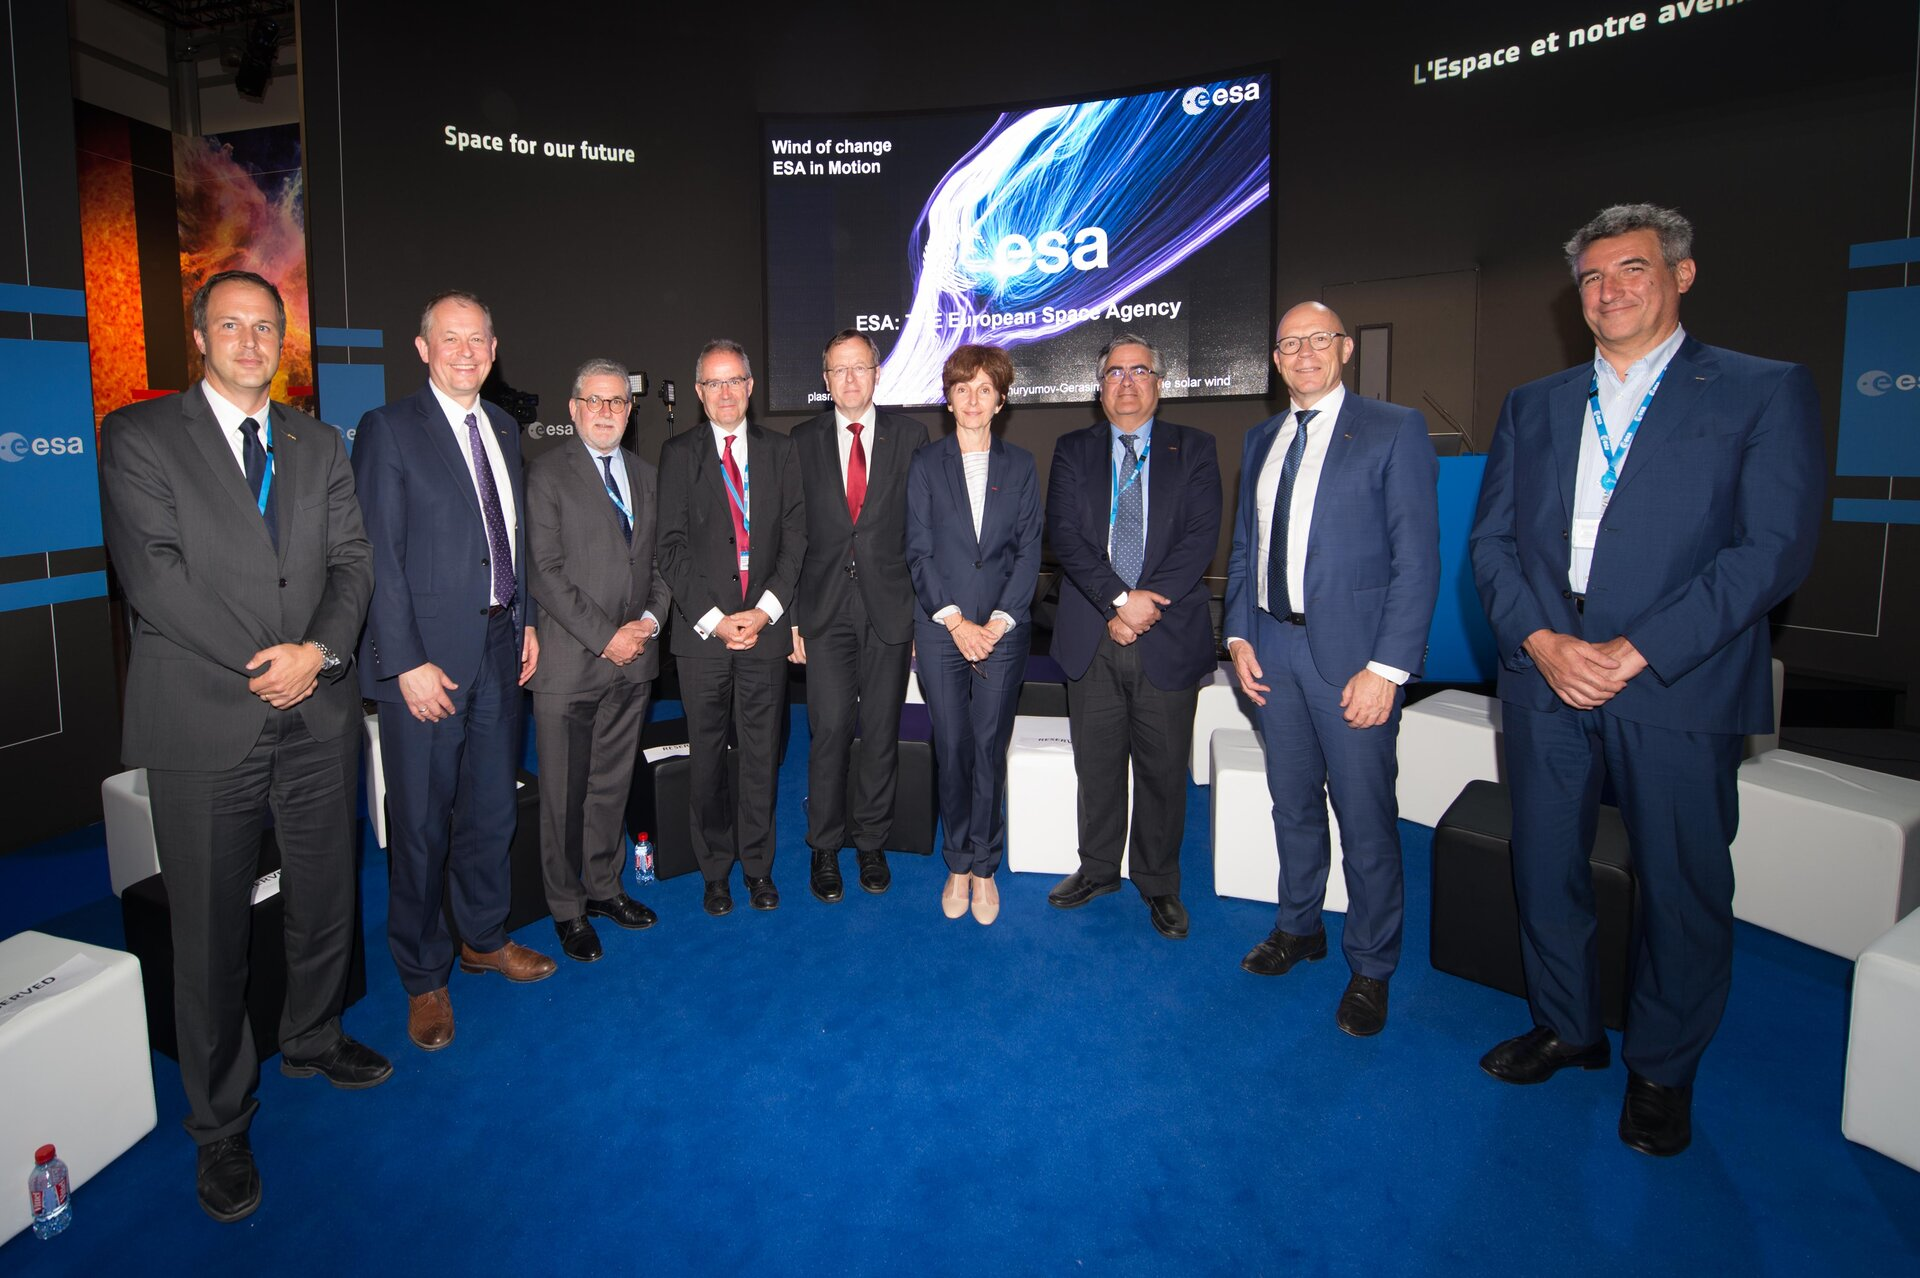 Jan Wörner and ESA directors